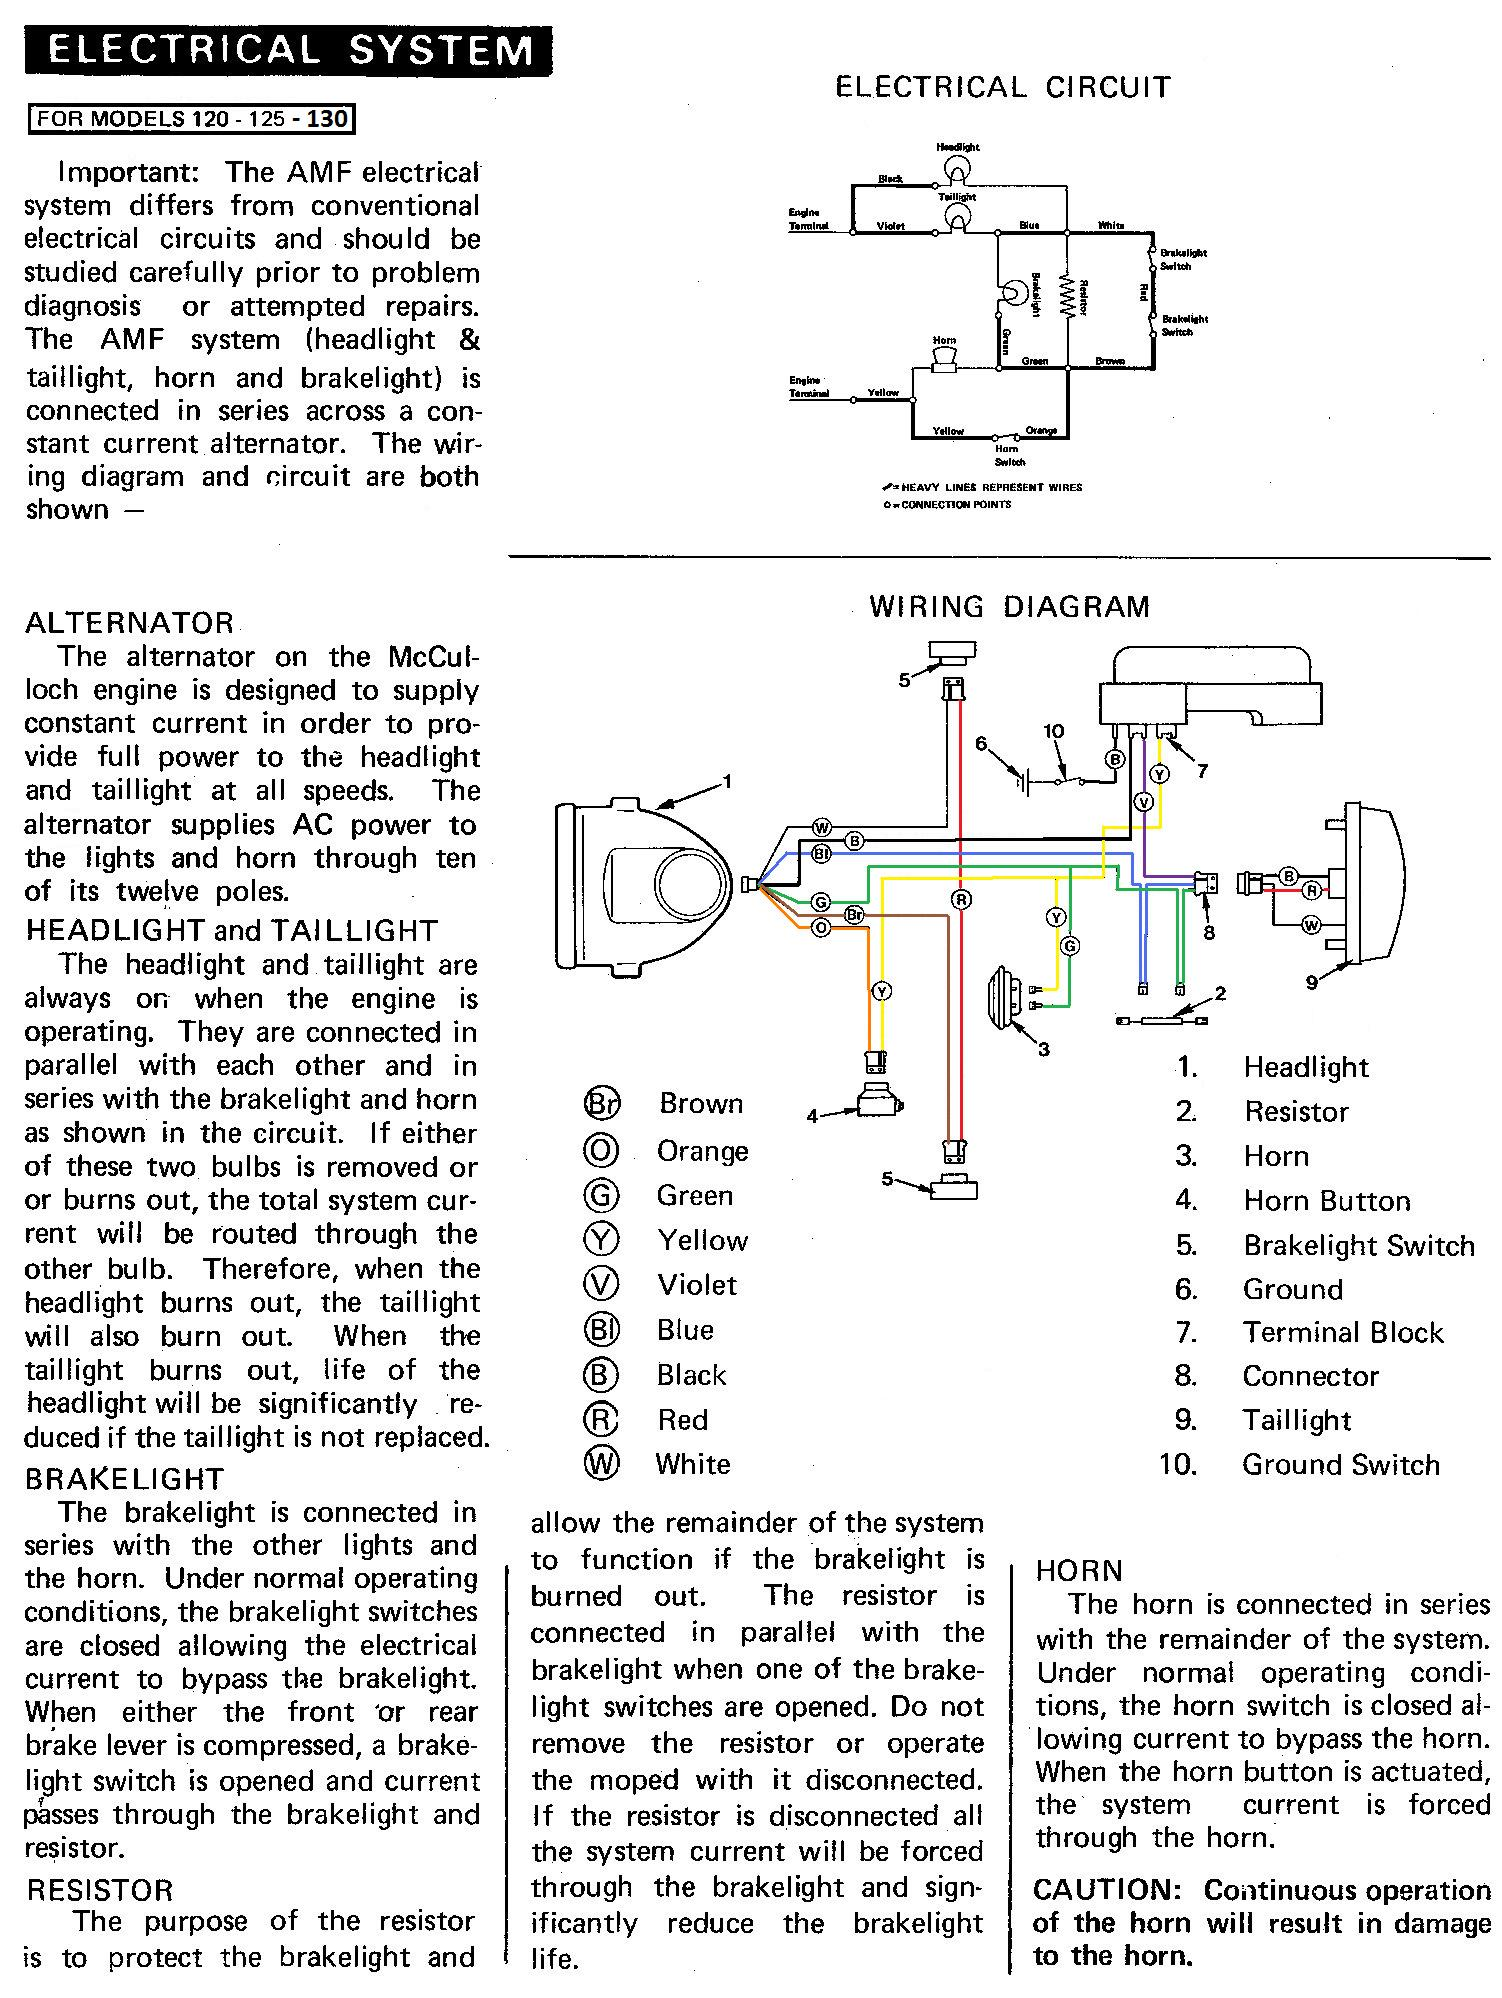 beautiful 1983 sportster wiring diagram component diagram wiring Sportster  4 Speed Diagram 1980 Sportster Wiring Diagram